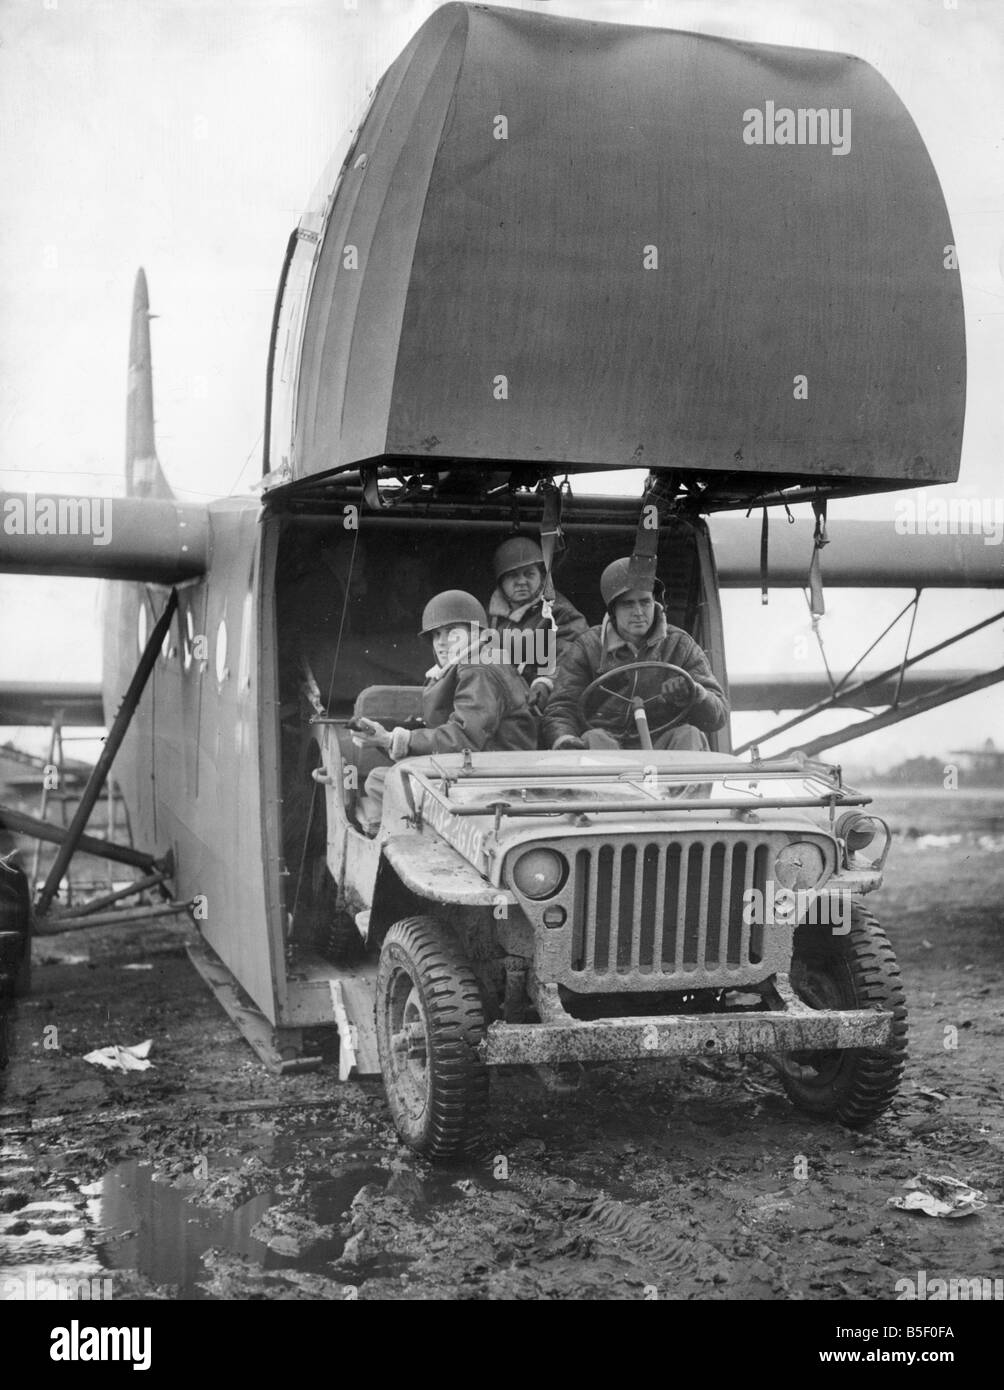 An American Waco glider cointaining a Willy jeep sent to Devon Stock